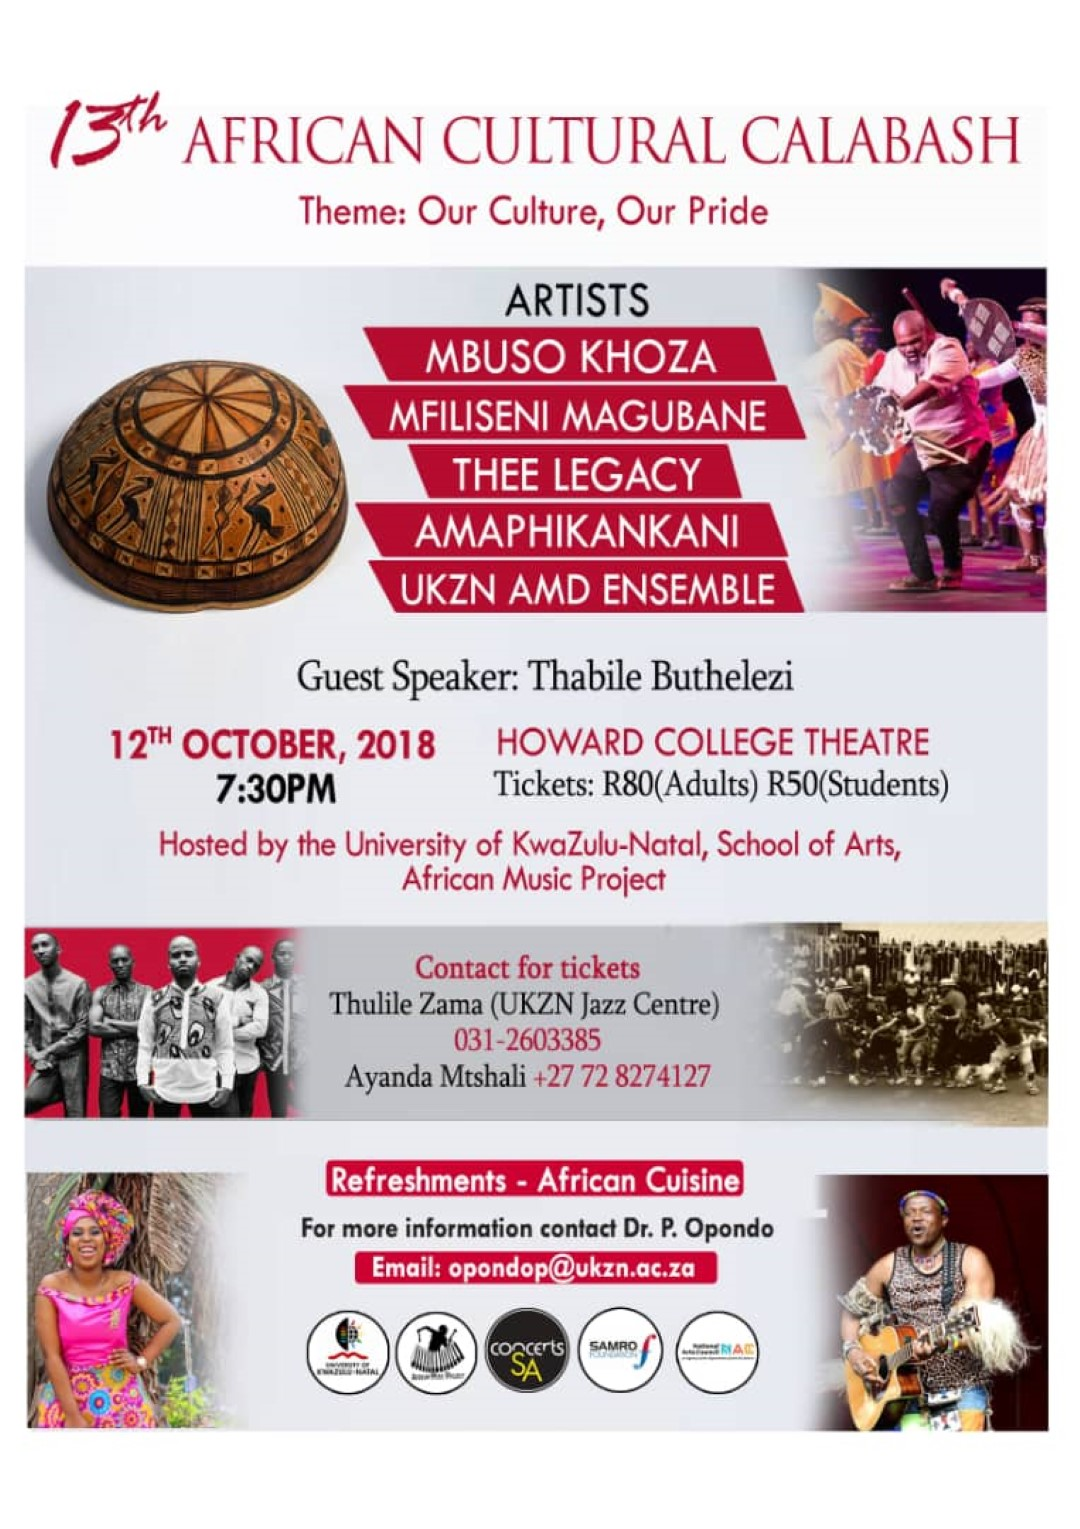 UKZN to host 13th Annual African Cultural Calabash & African Cuisine Event